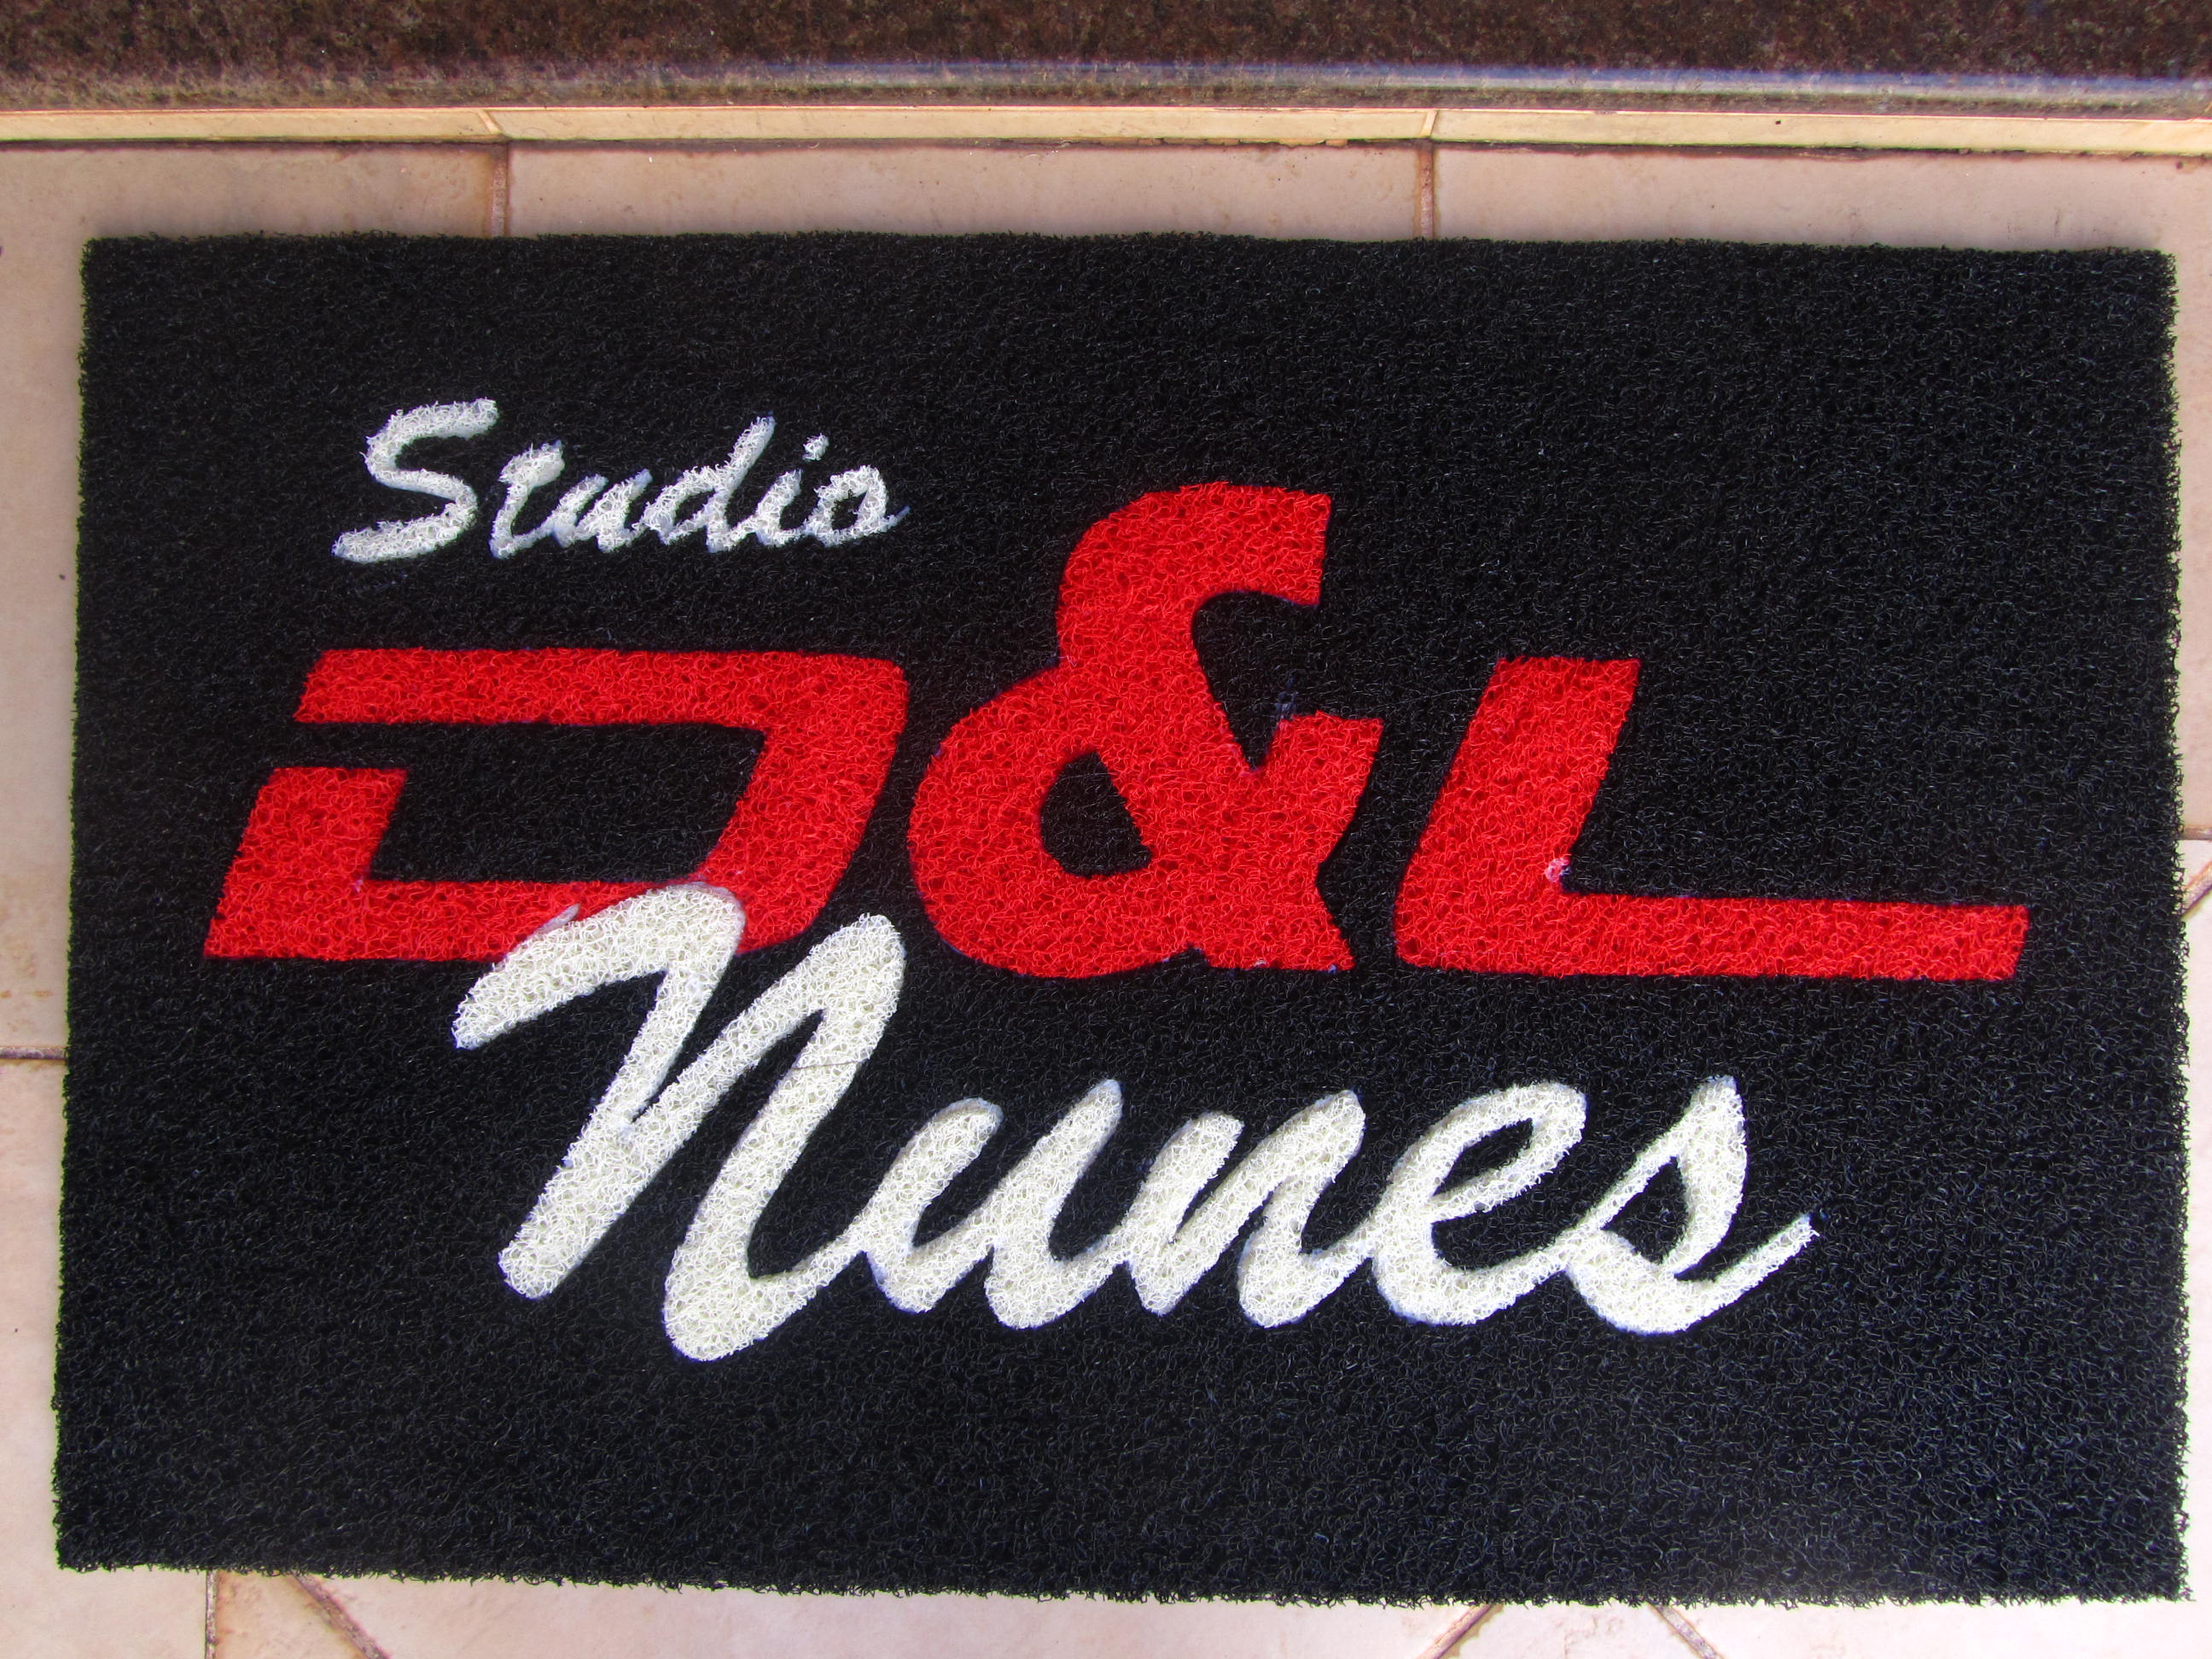 Studio D&L Nunes.